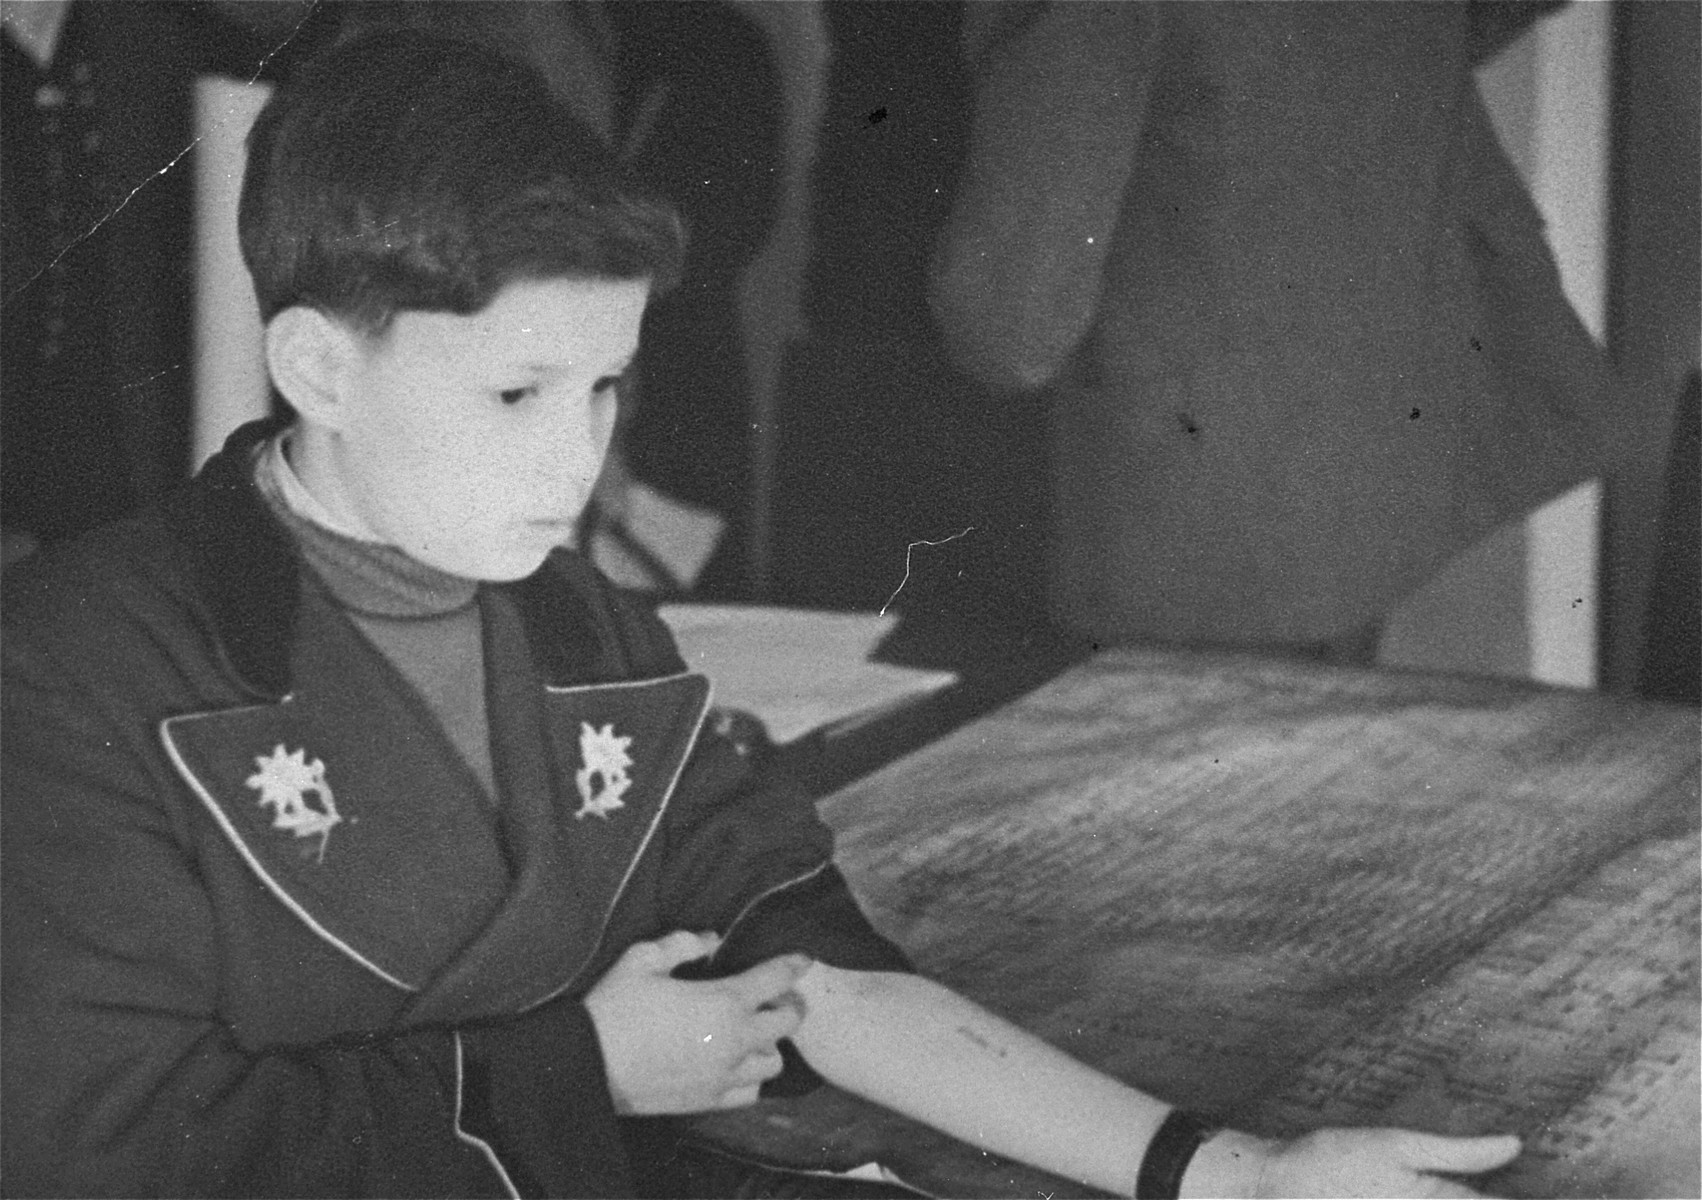 Child survivor, Luigi Ferri, shows the Auschwitz prisoner number tattooed on his arm, B7525.    The photograph is inscribed to the donor, Frieda Fisz Greenspan, a Polish Jewish survivor who befriended Luigi after the war in Krakow.